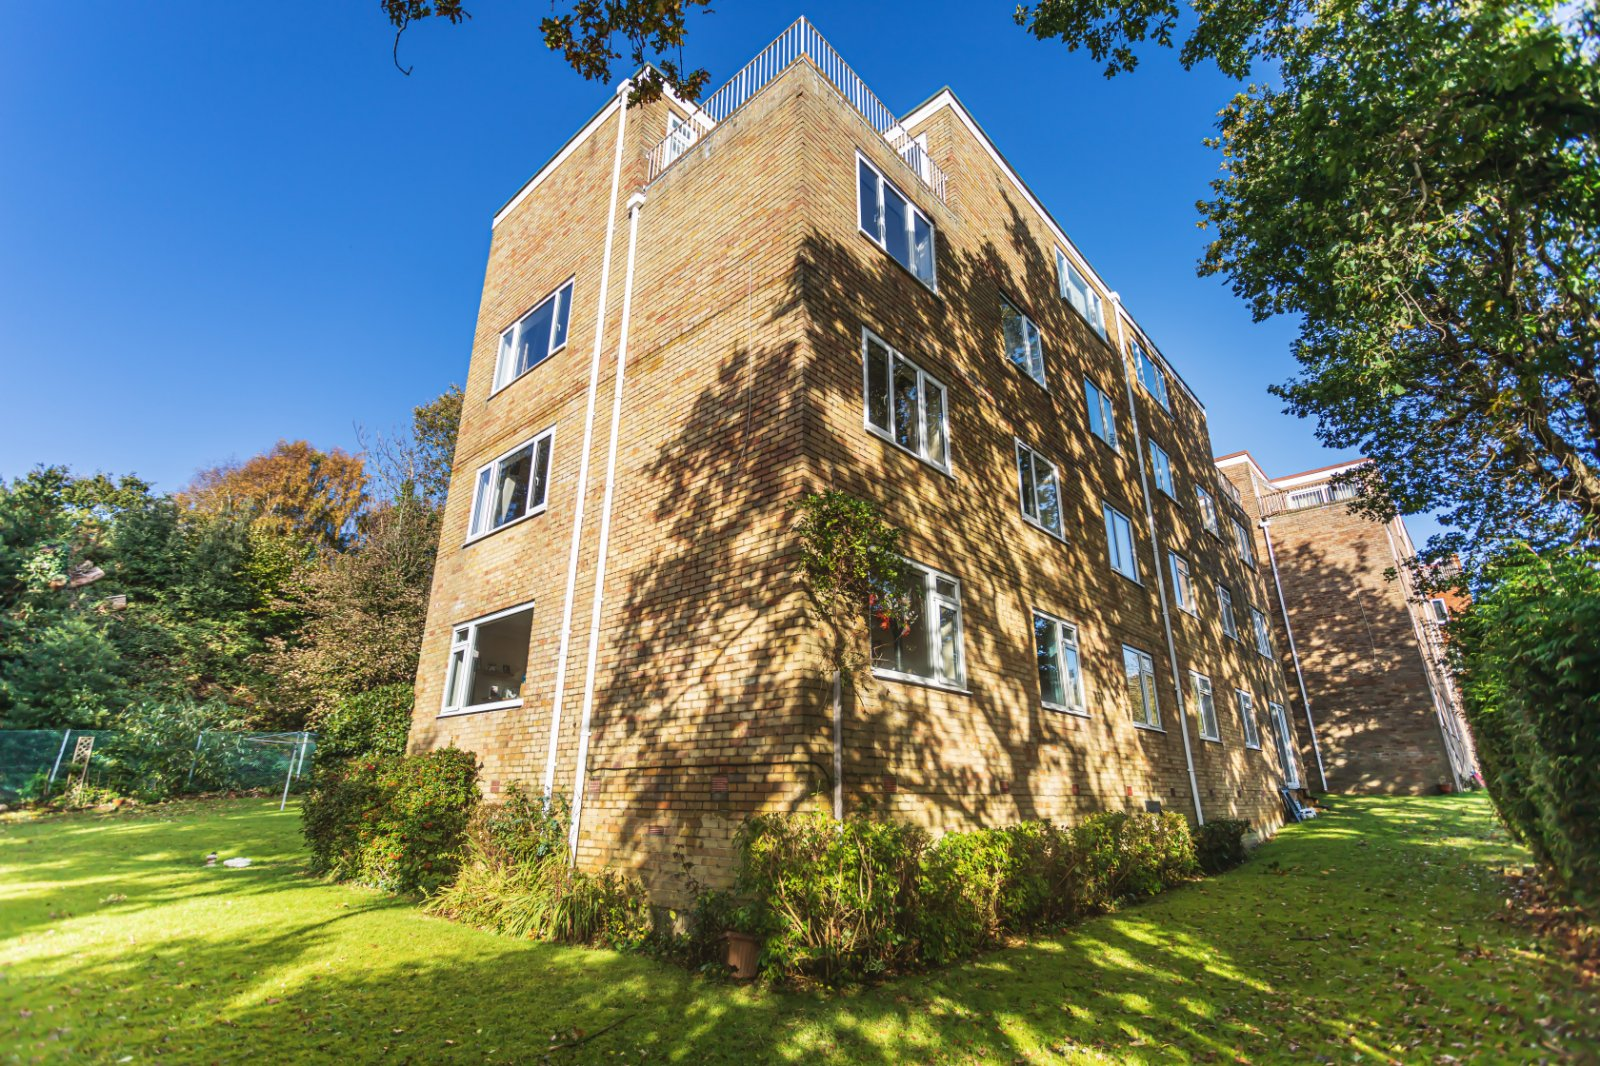 2 bed apartment for sale in Steepdene, Lower Parkstone - Property Image 1